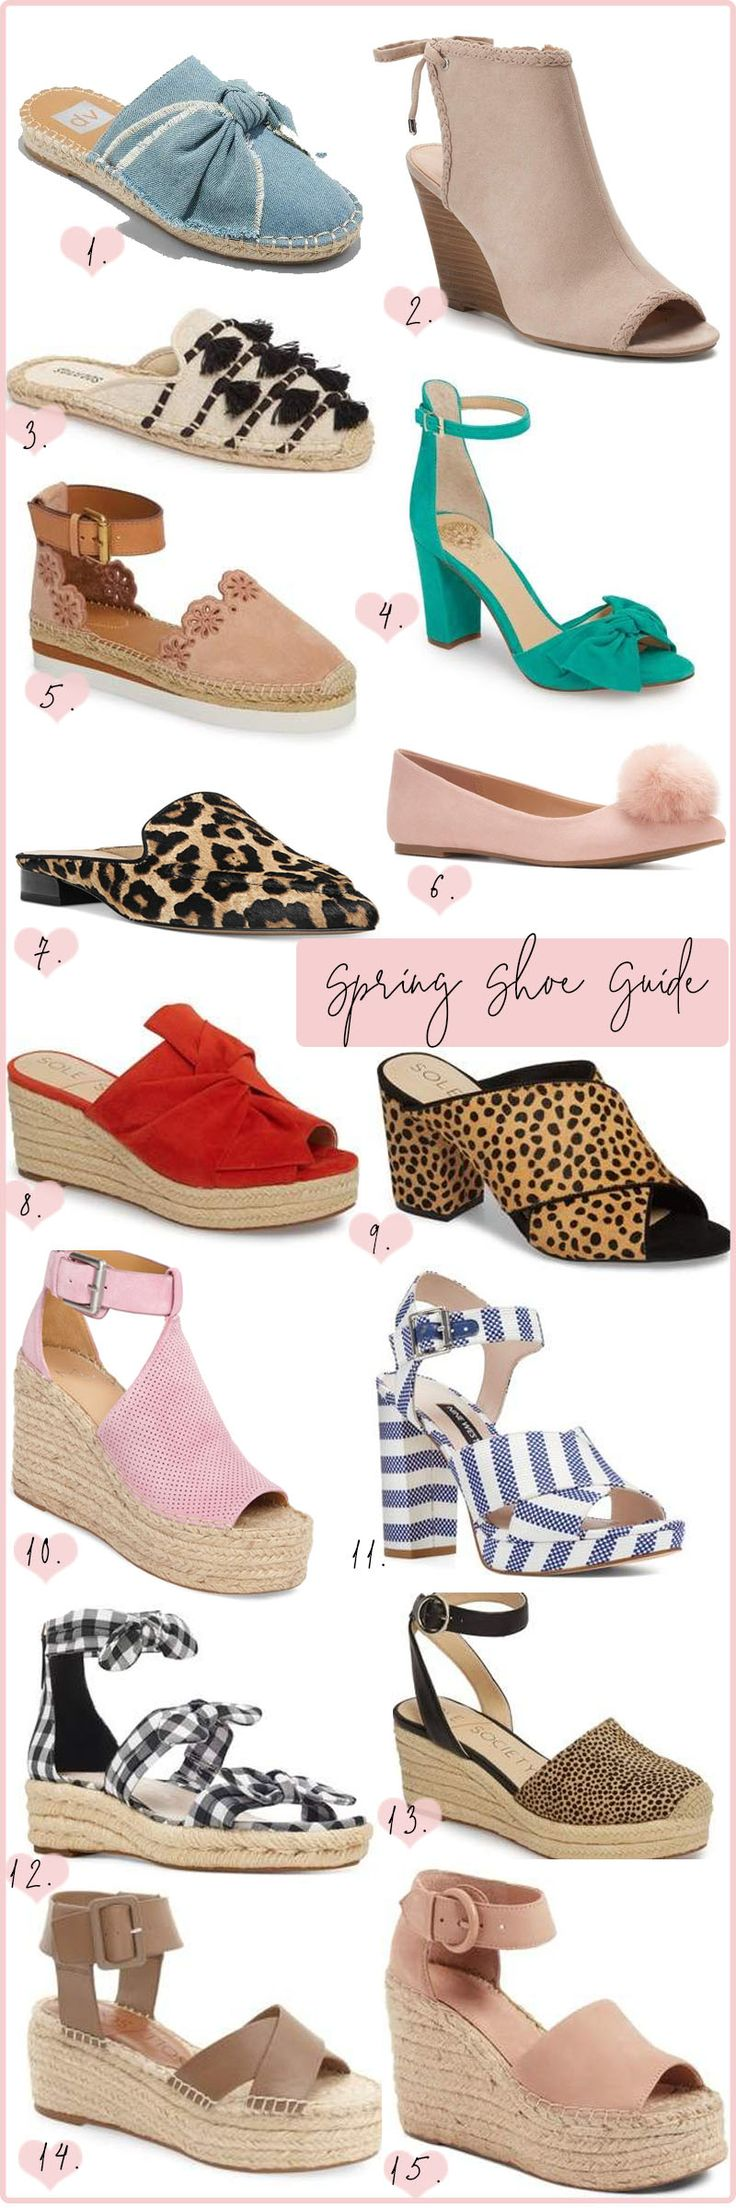 Rounding up the best spring shoes for spring 2018. The cutest wedges, mules, slides and more. Get outfit inspiration here.